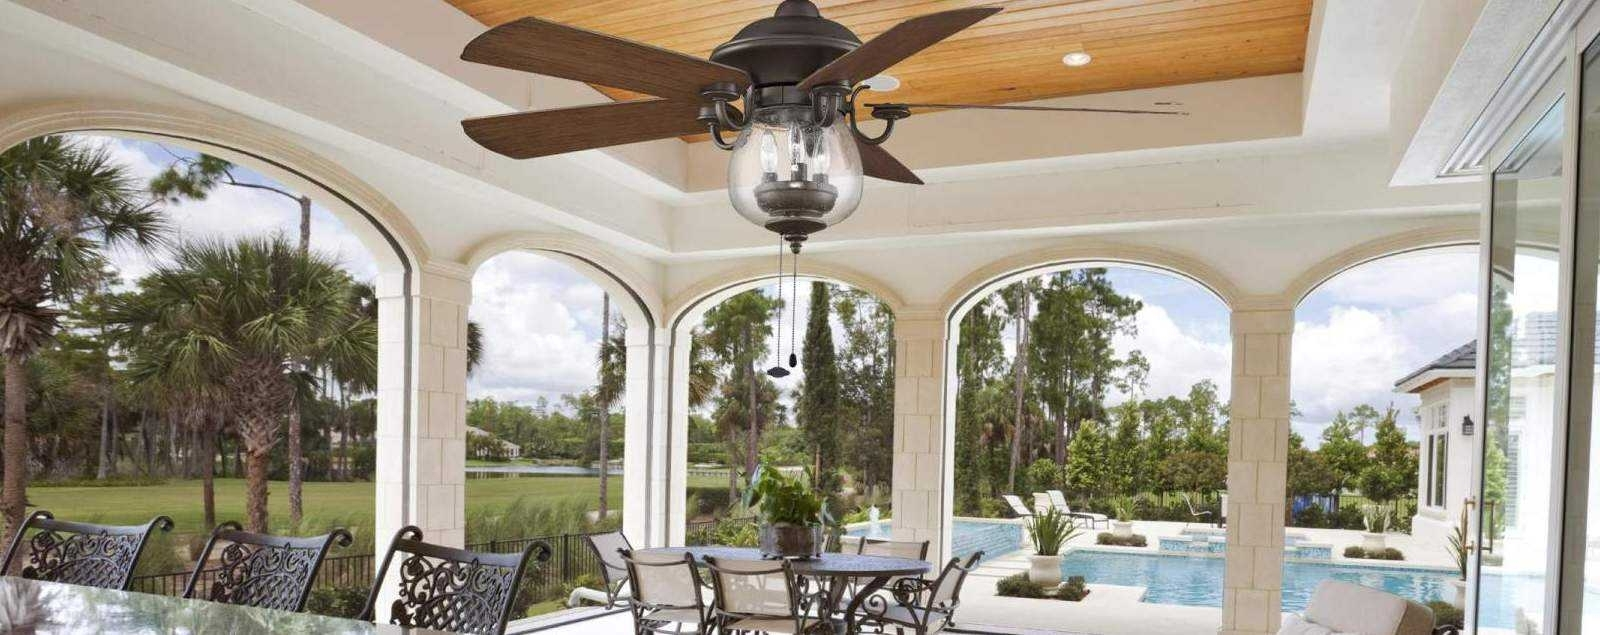 2019 Outdoor Ceiling Fans For Porch Intended For Outdoor Ceiling Fans Hansen Ideas With Incredible Exterior For (View 8 of 20)